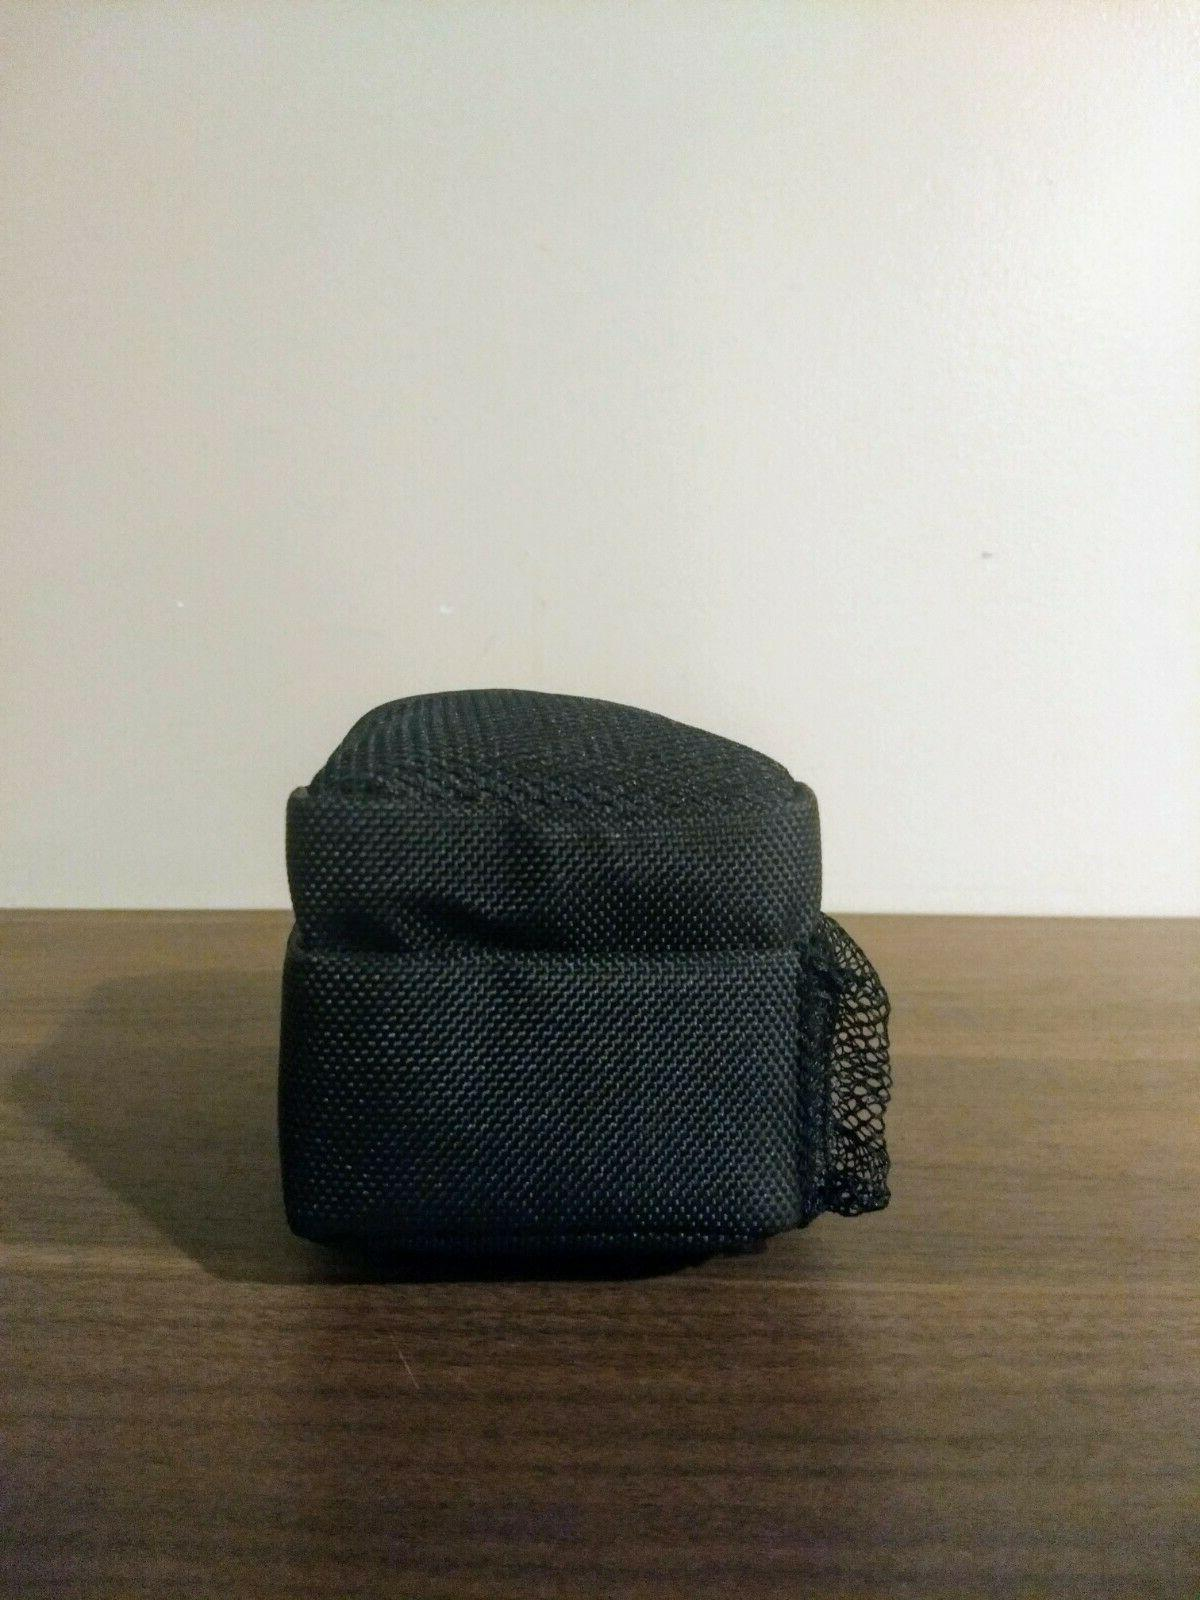 NEW! Camera Case. Black & Quality small SHIPPING